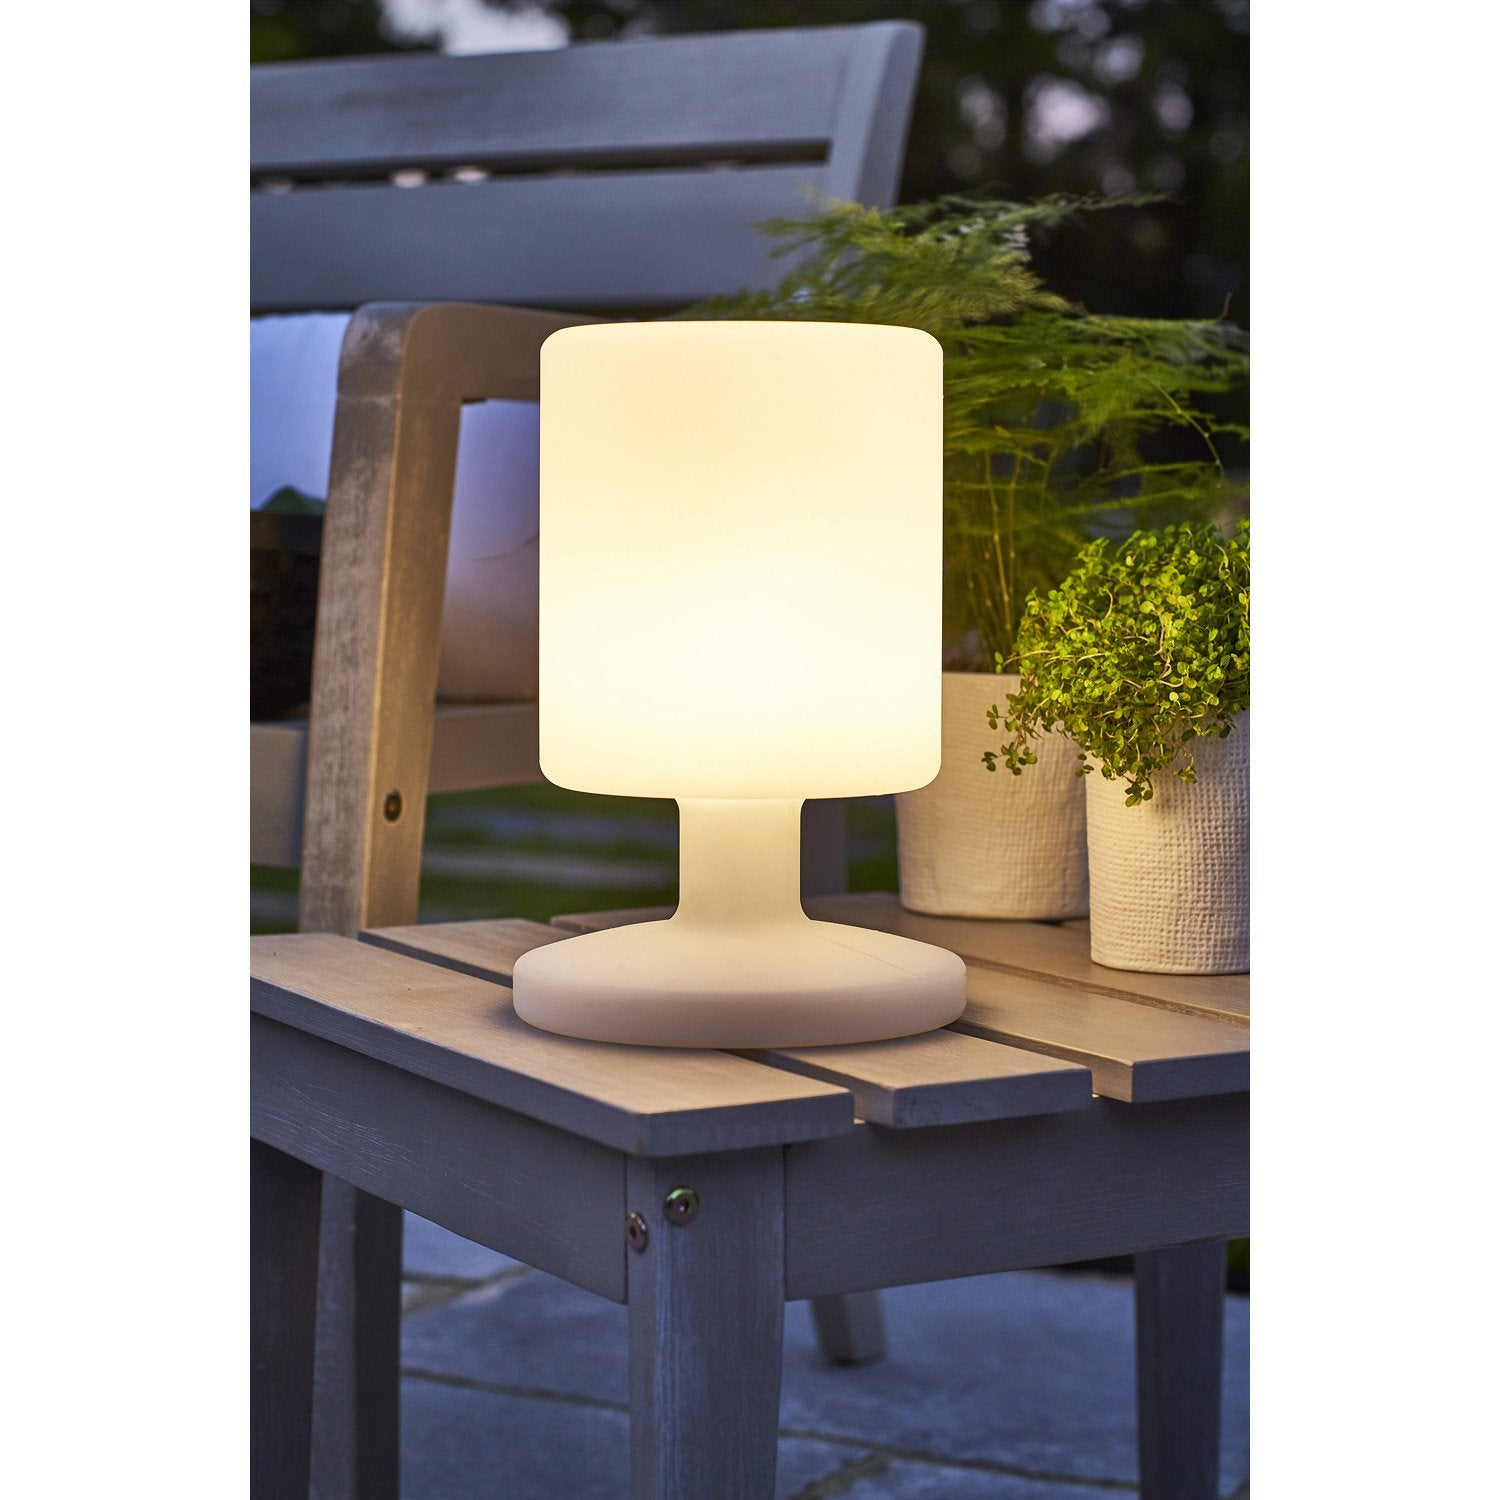 Lampe de table ext rieure led int gr e 5 w 130 lm blanc for Lampe solaire exterieur leroy merlin